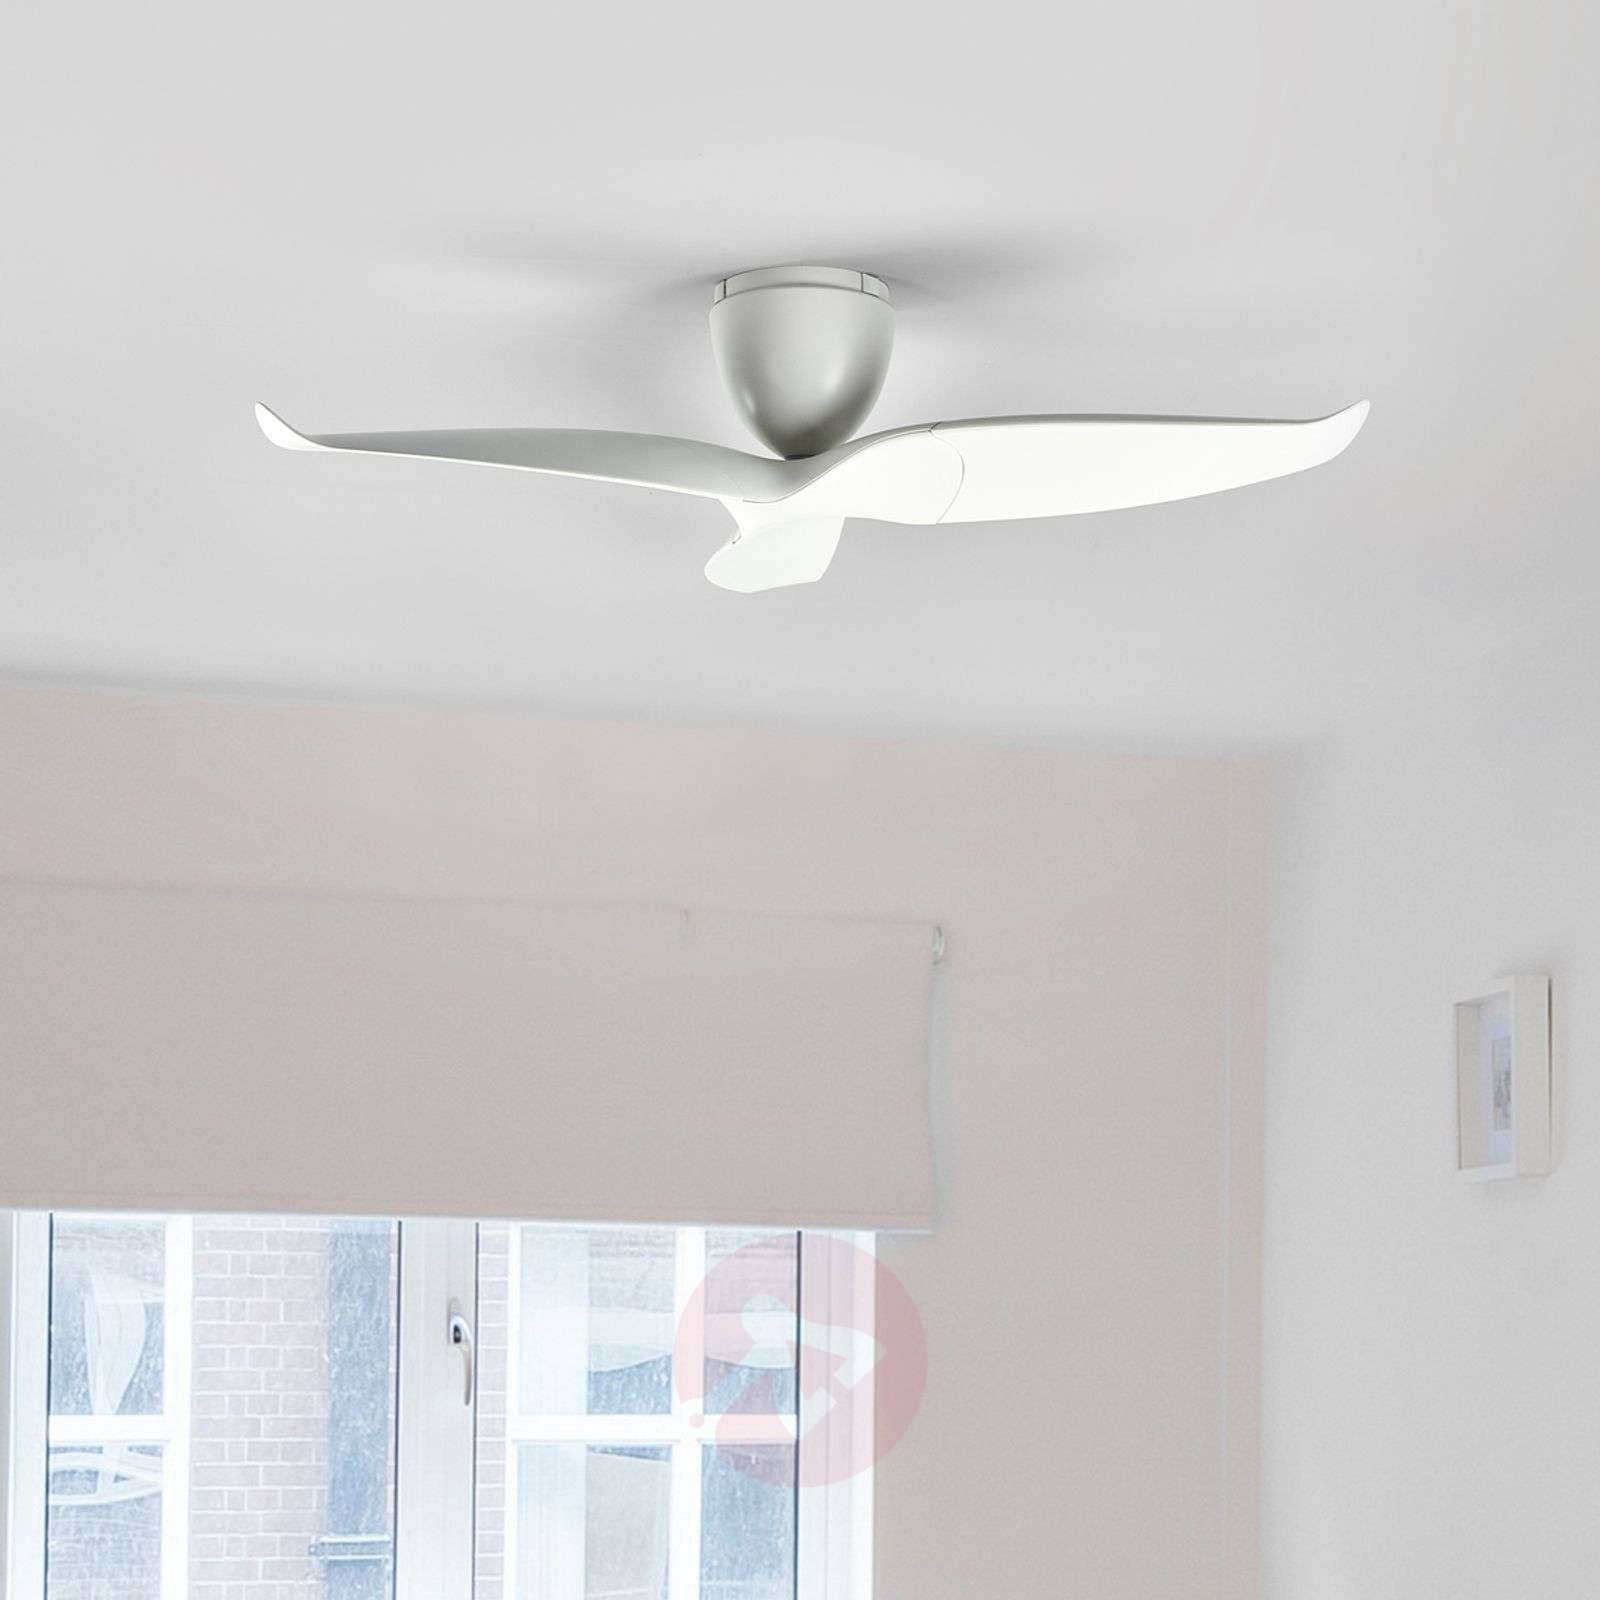 Aeratron ceiling fan, white, 126 cm-1068011-021